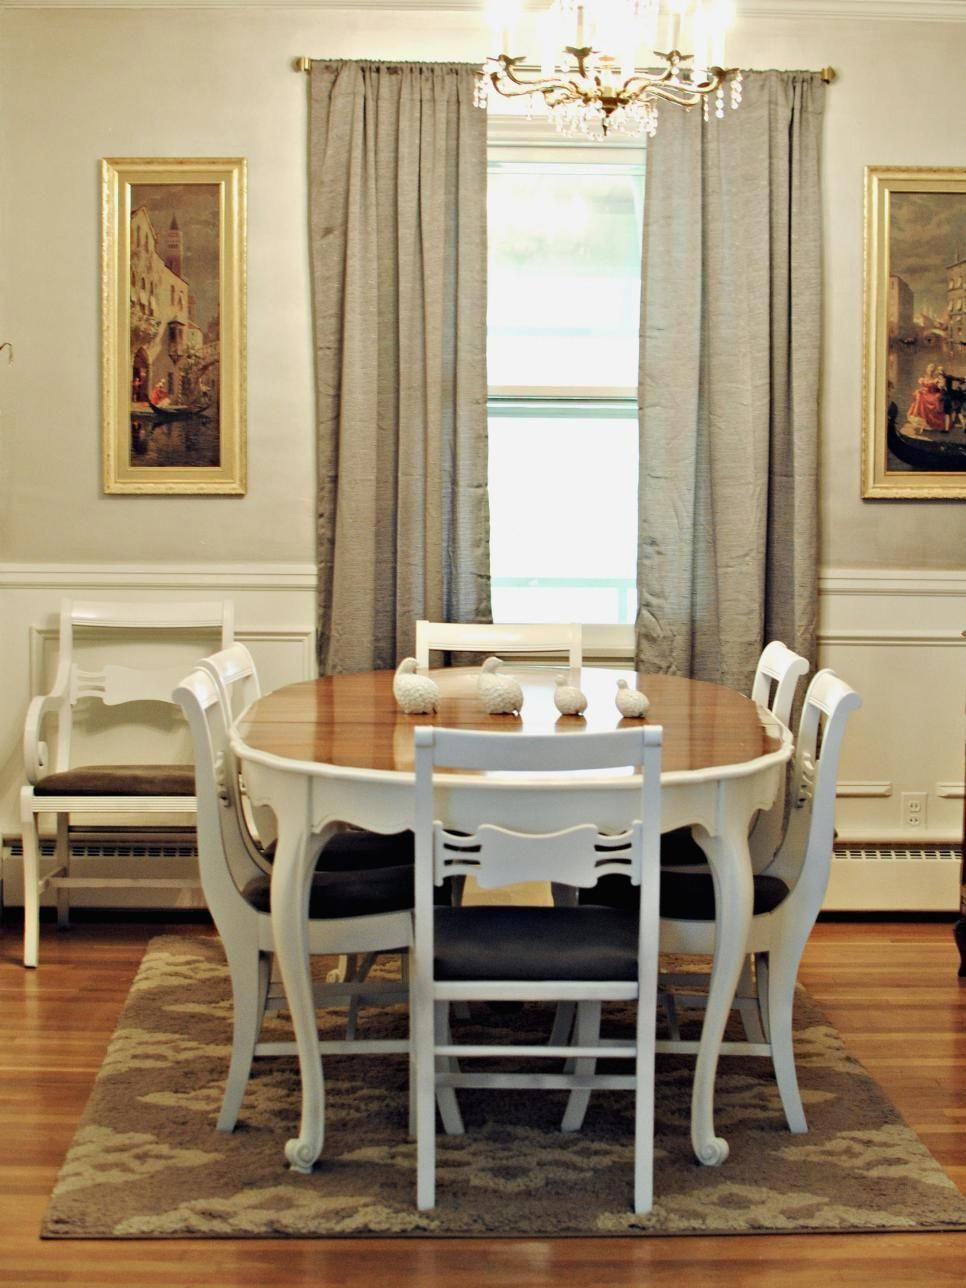 Say oui to french country decor interior design styles and color schemes for home decorating hgtv countrystyleforhomedecor